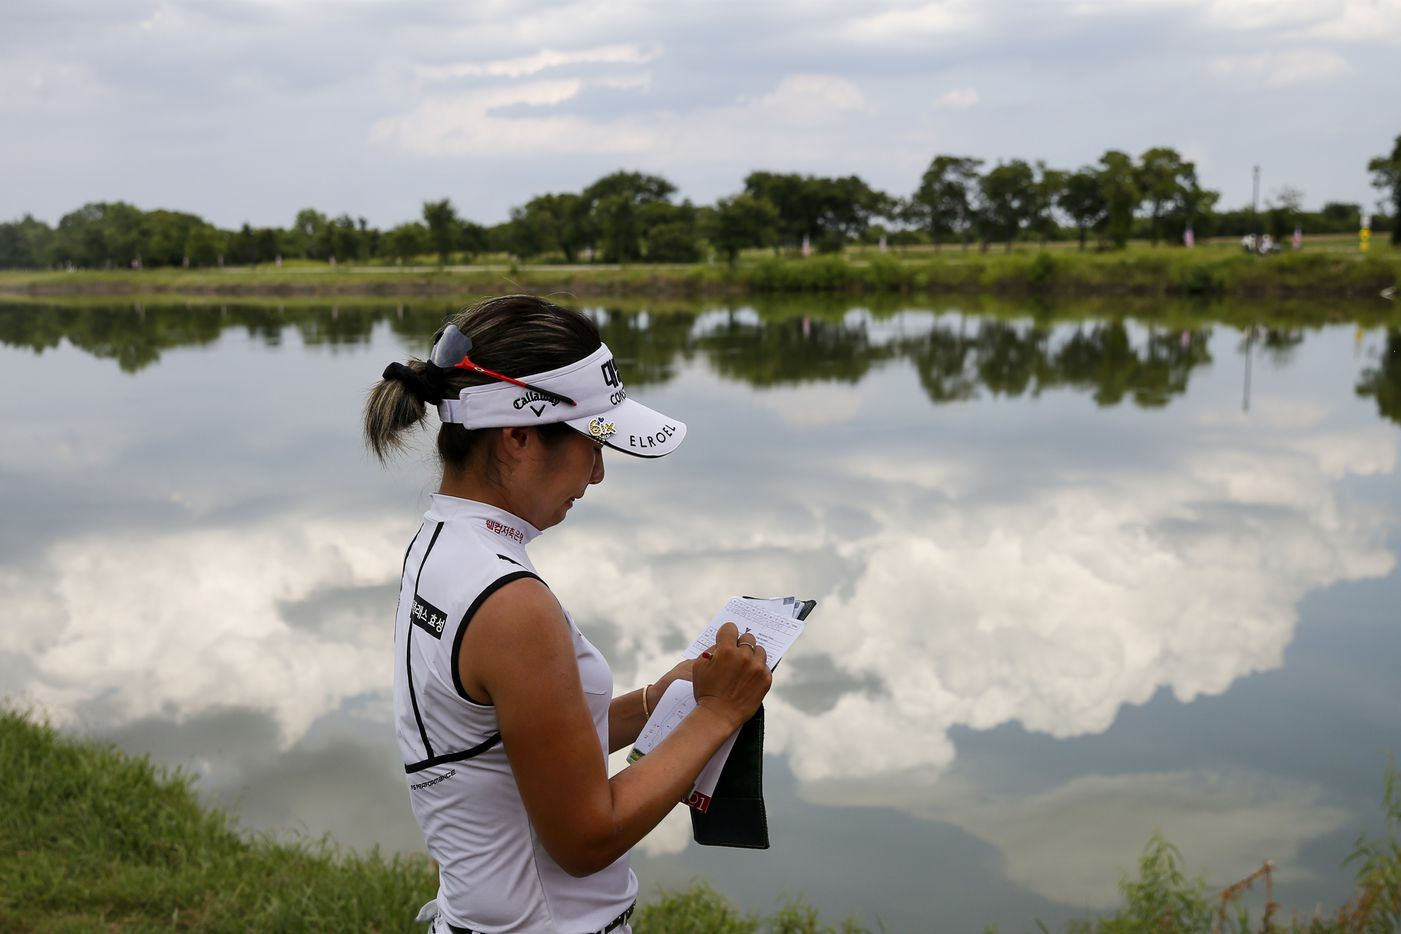 Professional golfer Jeongeun Lee6 signs her scorebook after recording a birdie on the 18th hole during day one of the LPGA VOA Classic on Thursday, July 1, 2021, in The Colony, Texas. (Elias Valverde II/The Dallas Morning News)